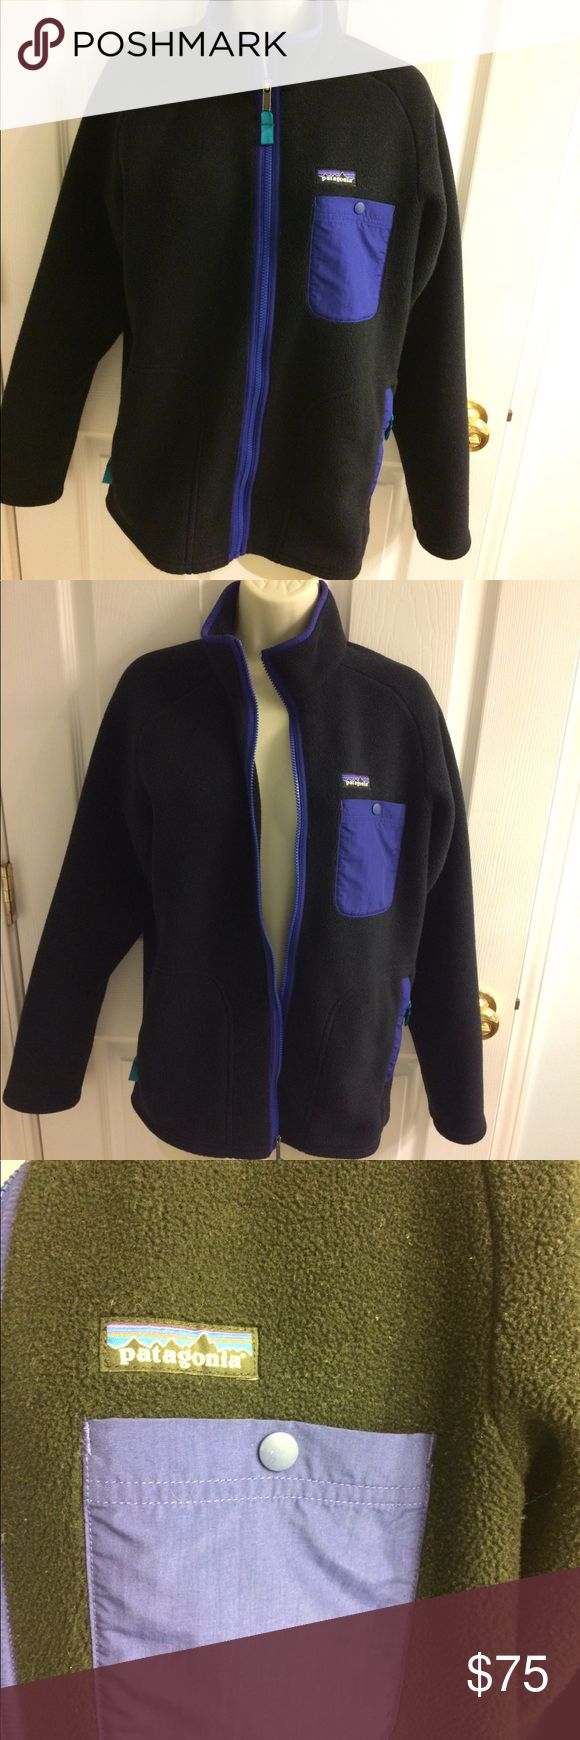 Patagonia men SYNCHILLA  jacket size - small. Patagonia SYNCHILLA men full zippered jacket with 2 side zippered pockets in a bold black and beautiful purple and teal accent colors with the signature Patagonia logo on the left side of the jacket right above the purple snap close pockets all zippers have teal pulls and work without issues this jacket is is immaculate condition it is just waiting for you so that it can keep you warm this is a hard to come by color combination do not let it pass…